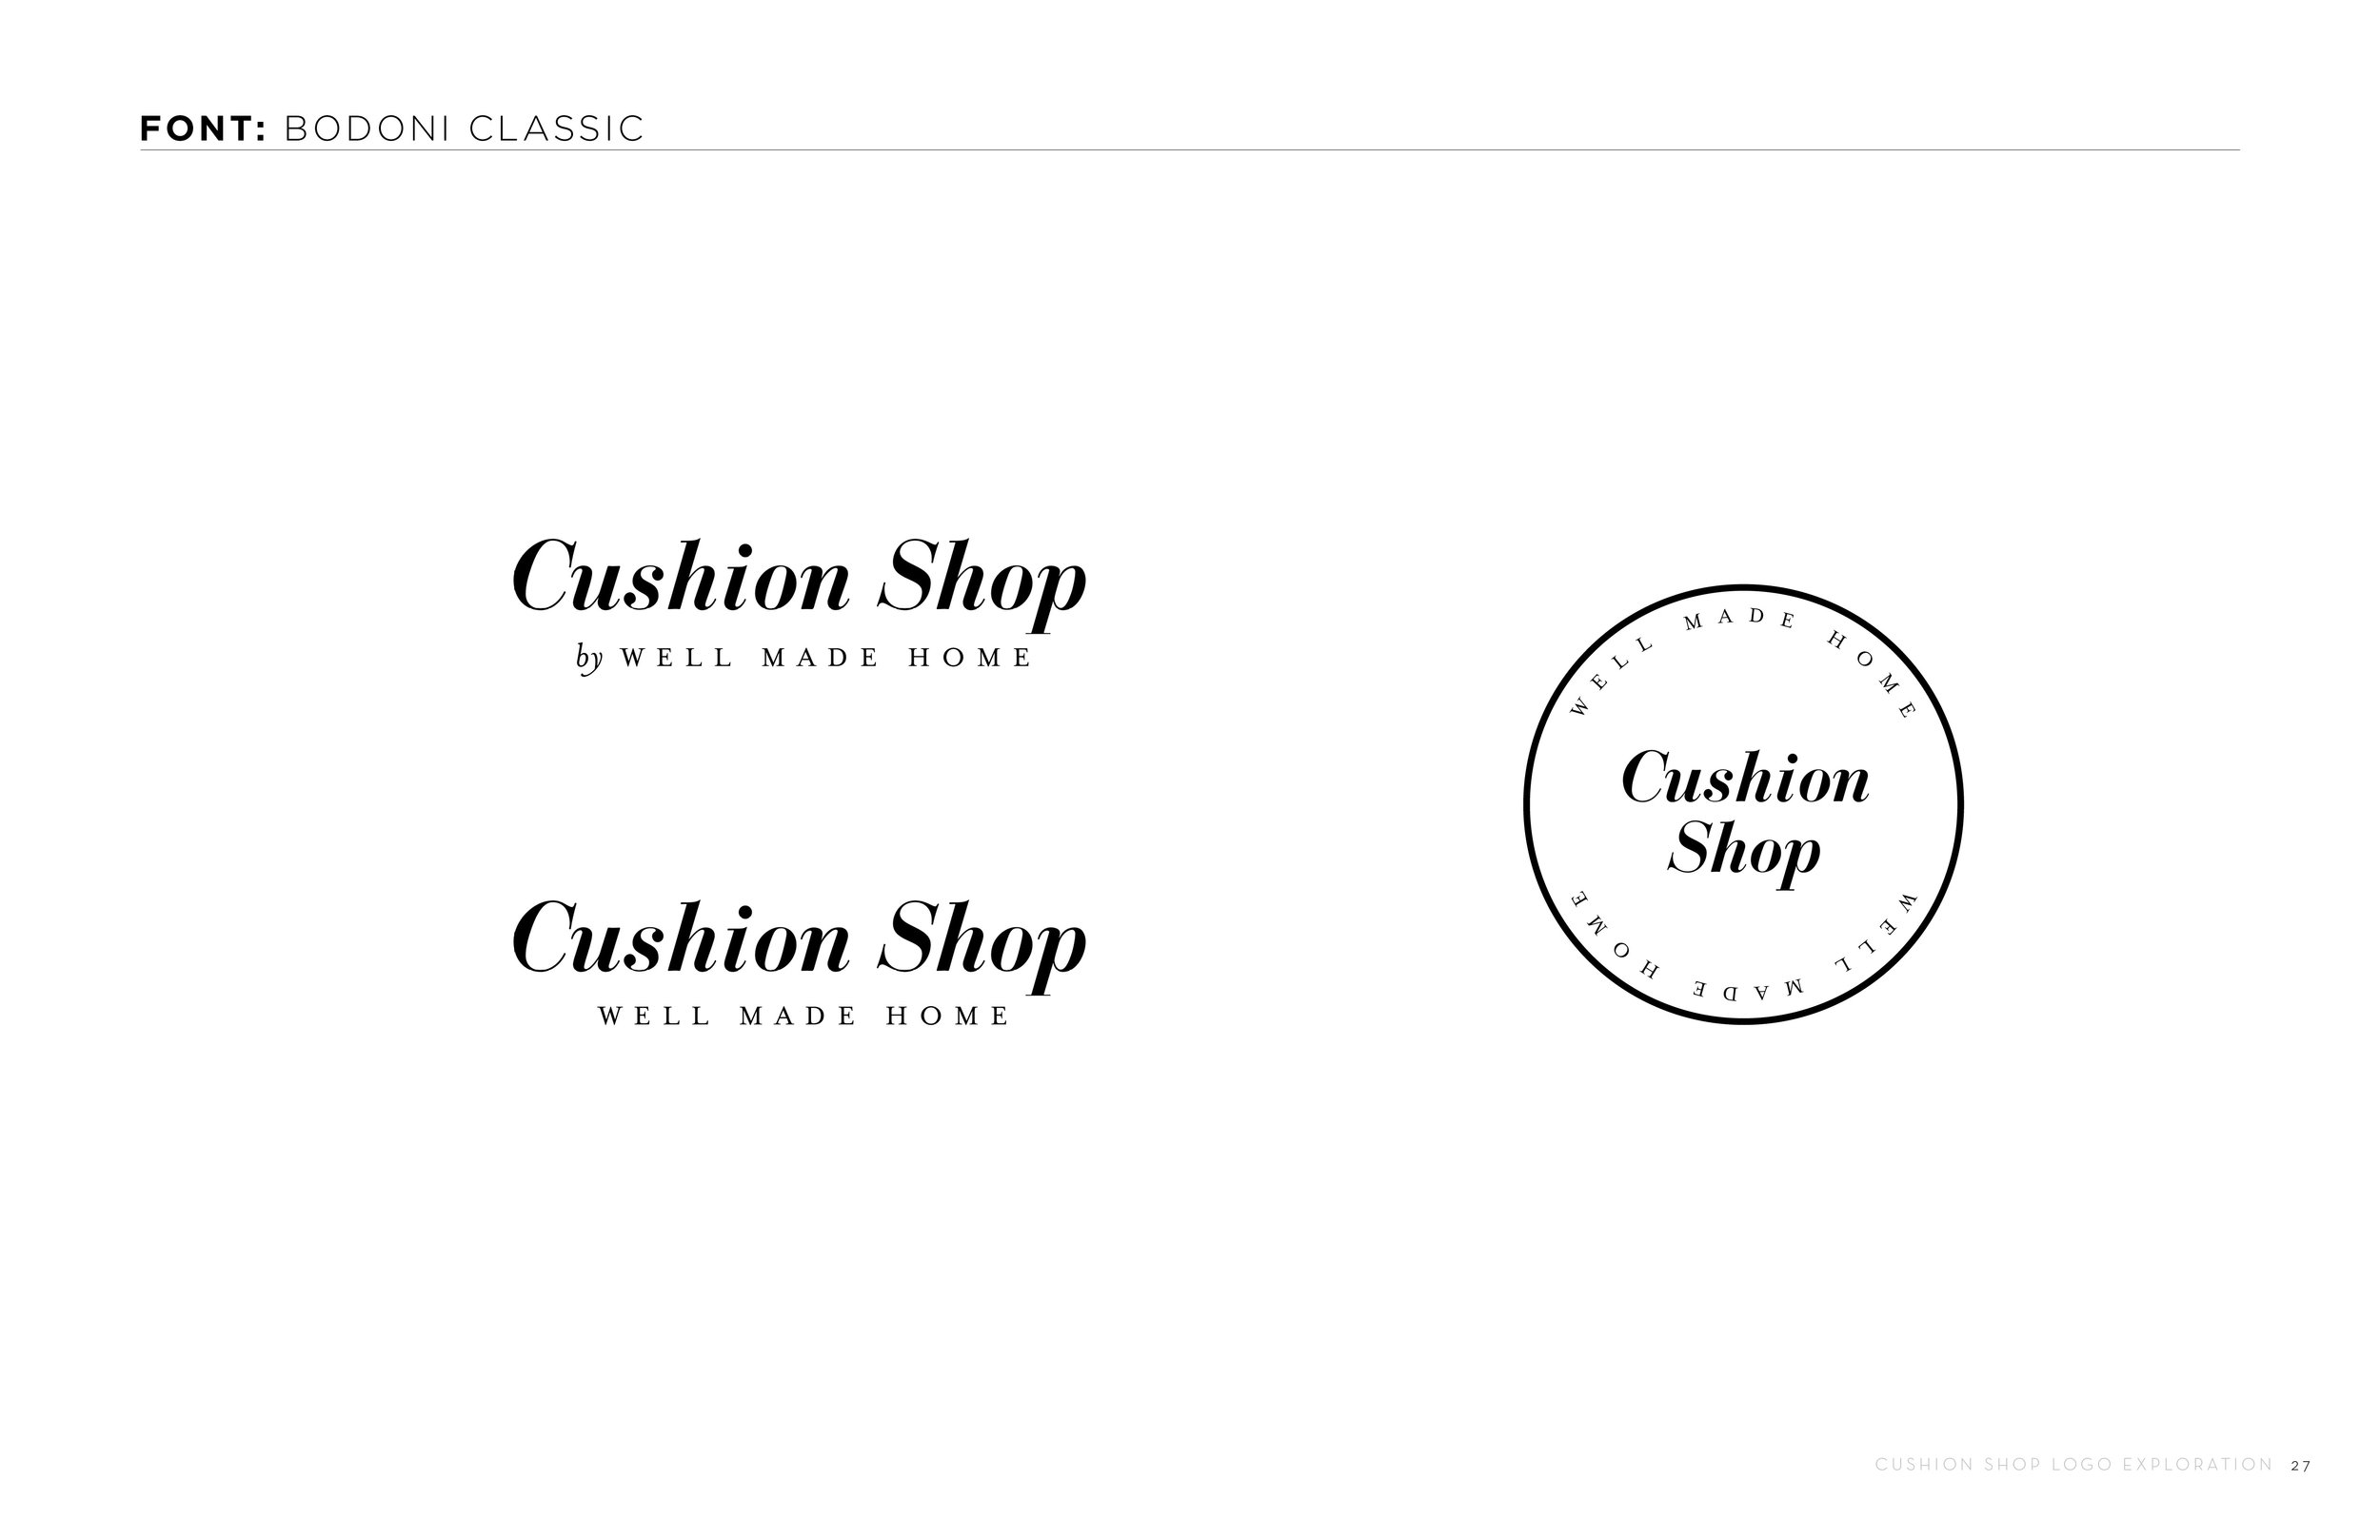 Cushion Shop_Logo Concepts_R10_27.jpg